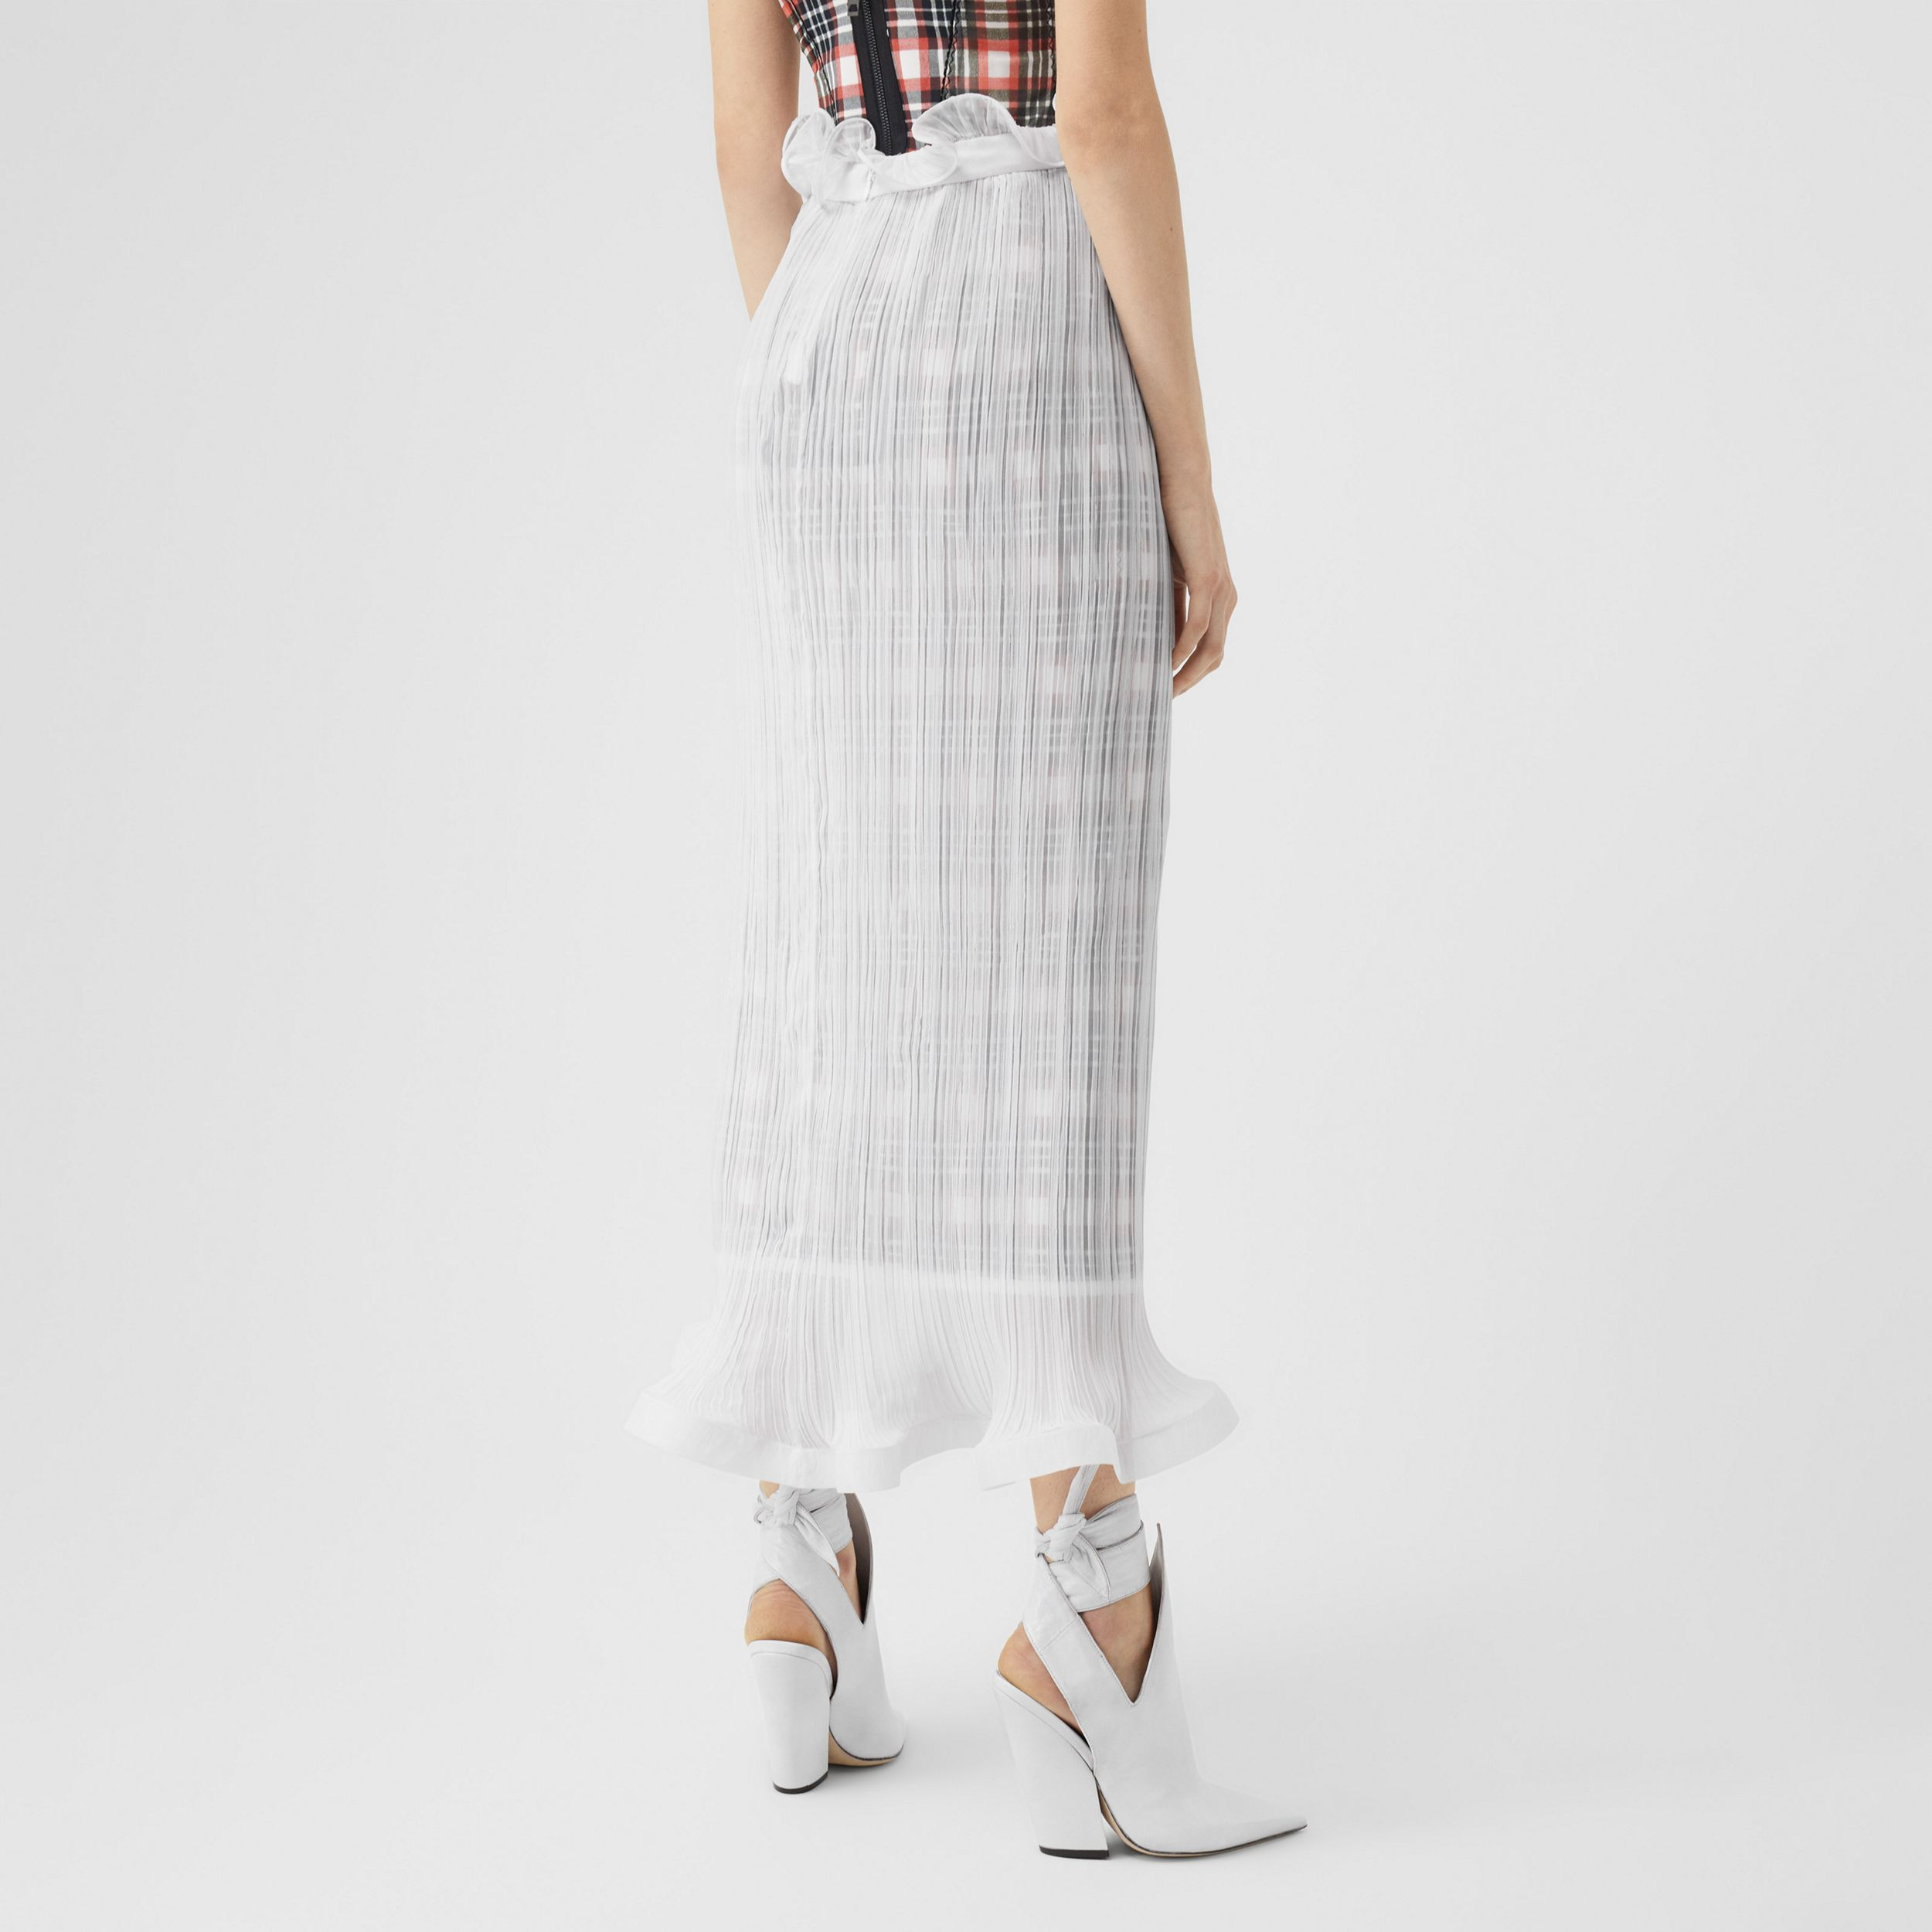 Ruffle Detail Chiffon Plissé Skirt in Optic White - Women | Burberry Singapore - 2